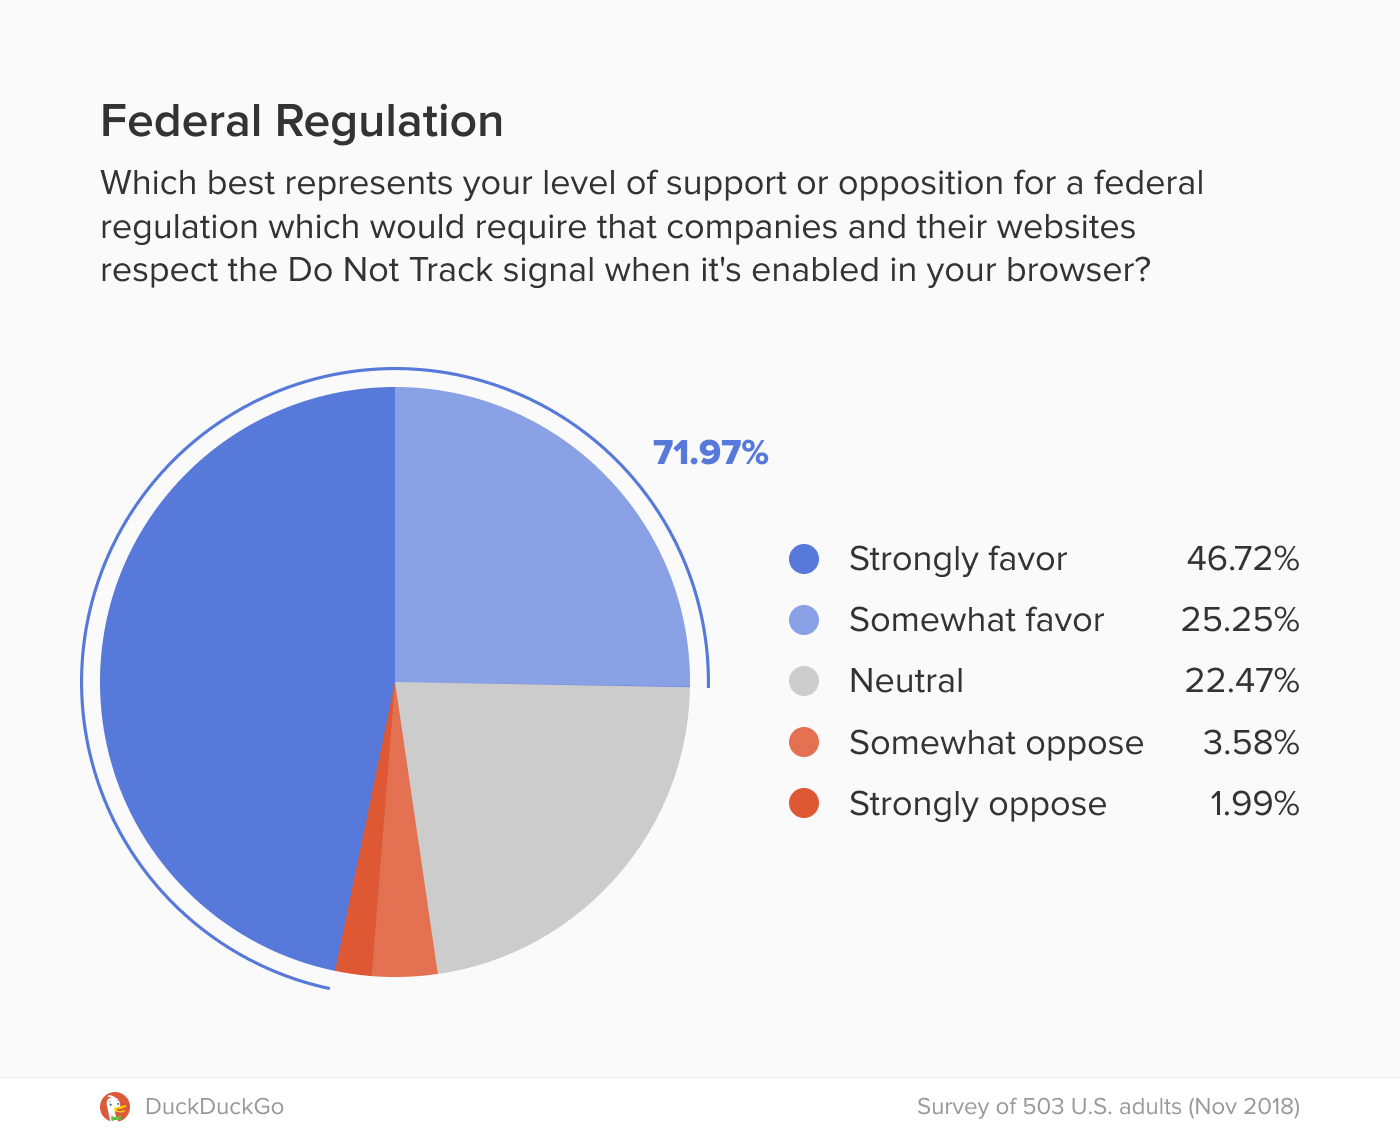 Pie chart showing 71.9 percent of respondents would favor federal regulation requiring companies and their websites to respect the Do Not Track signal when enabled.